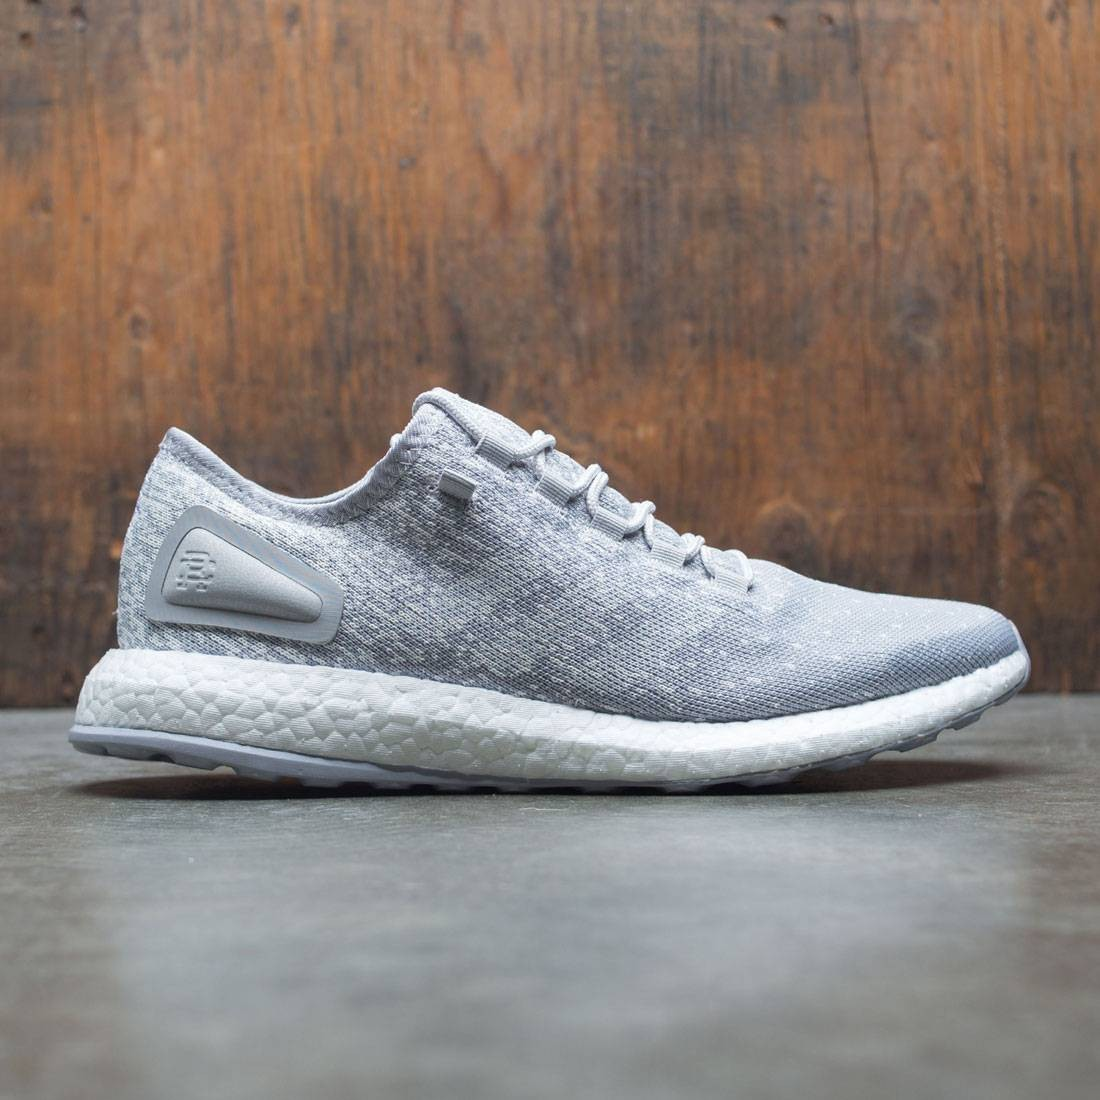 size 40 cad70 258e1 Adidas x Reigning Champ Men PureBOOST gray chalk white footw